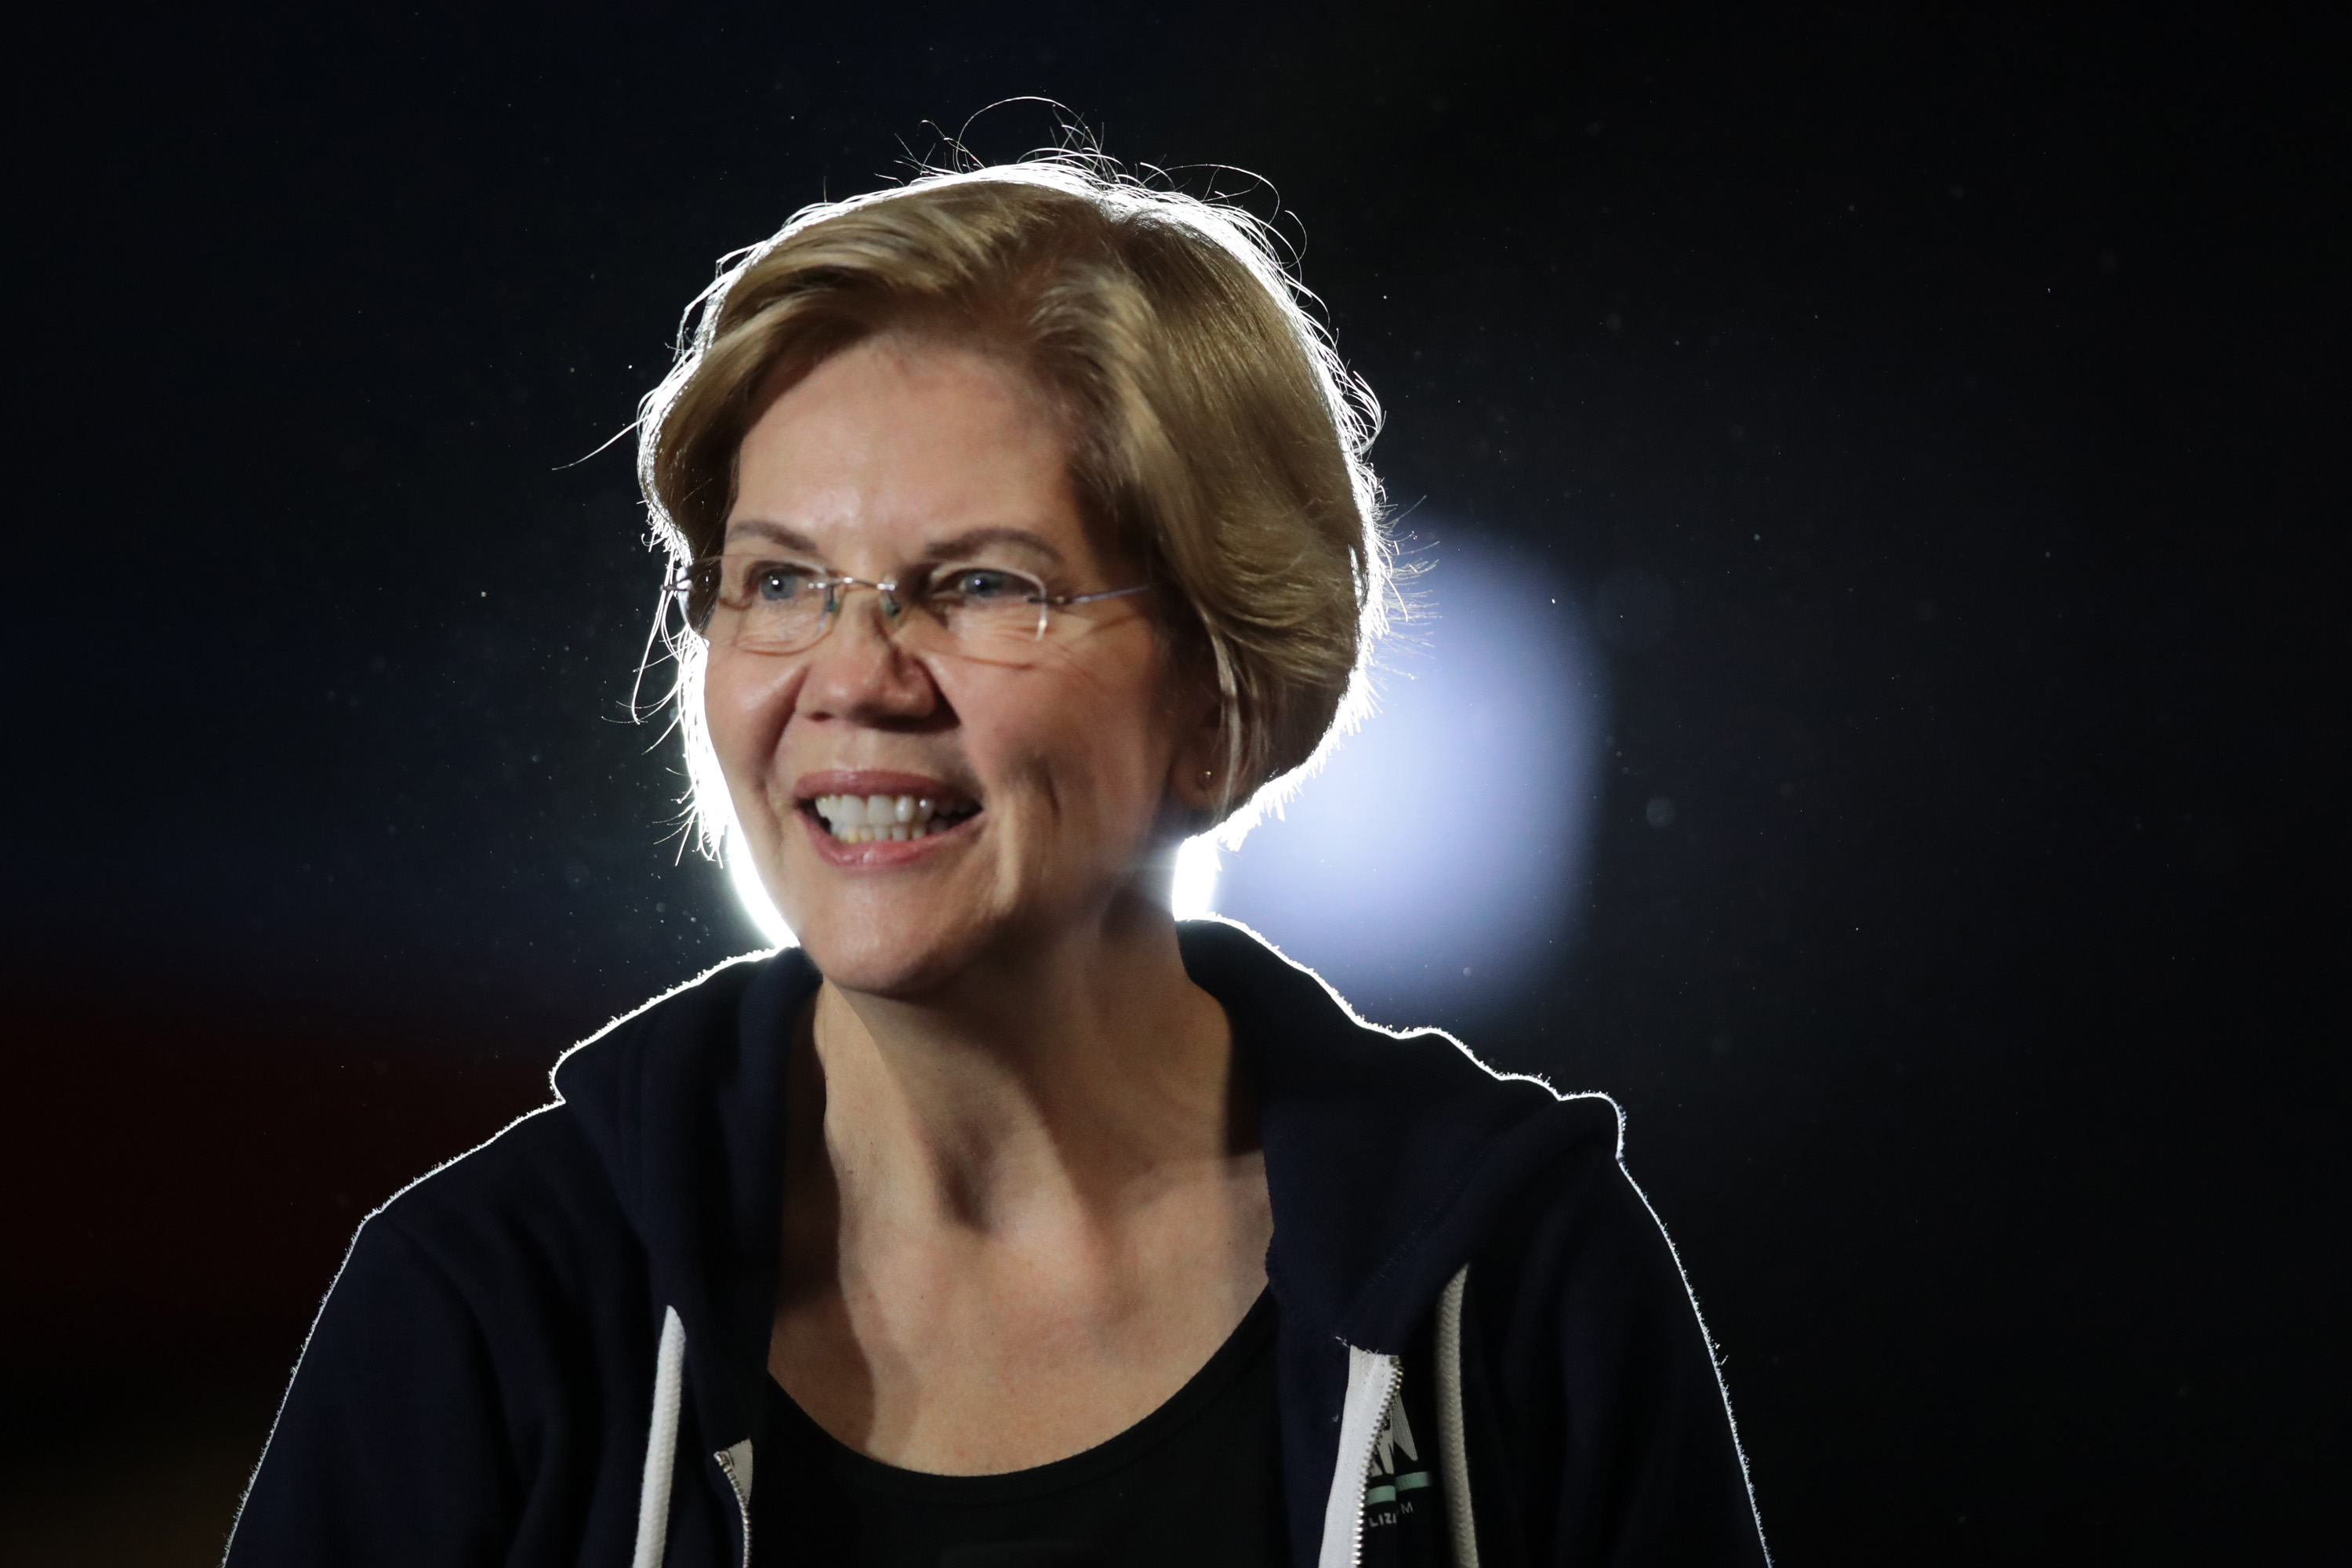 WEST DES MOINES, IOWA - NOVEMBER 25: Democratic presidential candidate Sen. Elizabeth Warren (D-MA) speaks to guests during a campaign stop at the Val Air Ballroom on November 25, 2019 in West Des Moines, Iowa. The 2020 Iowa Democratic caucuses will take place on February 3, 2020, making it the first nominating contest for the Democratic Party in choosing their presidential candidate. (Photo by Scott Olson/Getty Images)